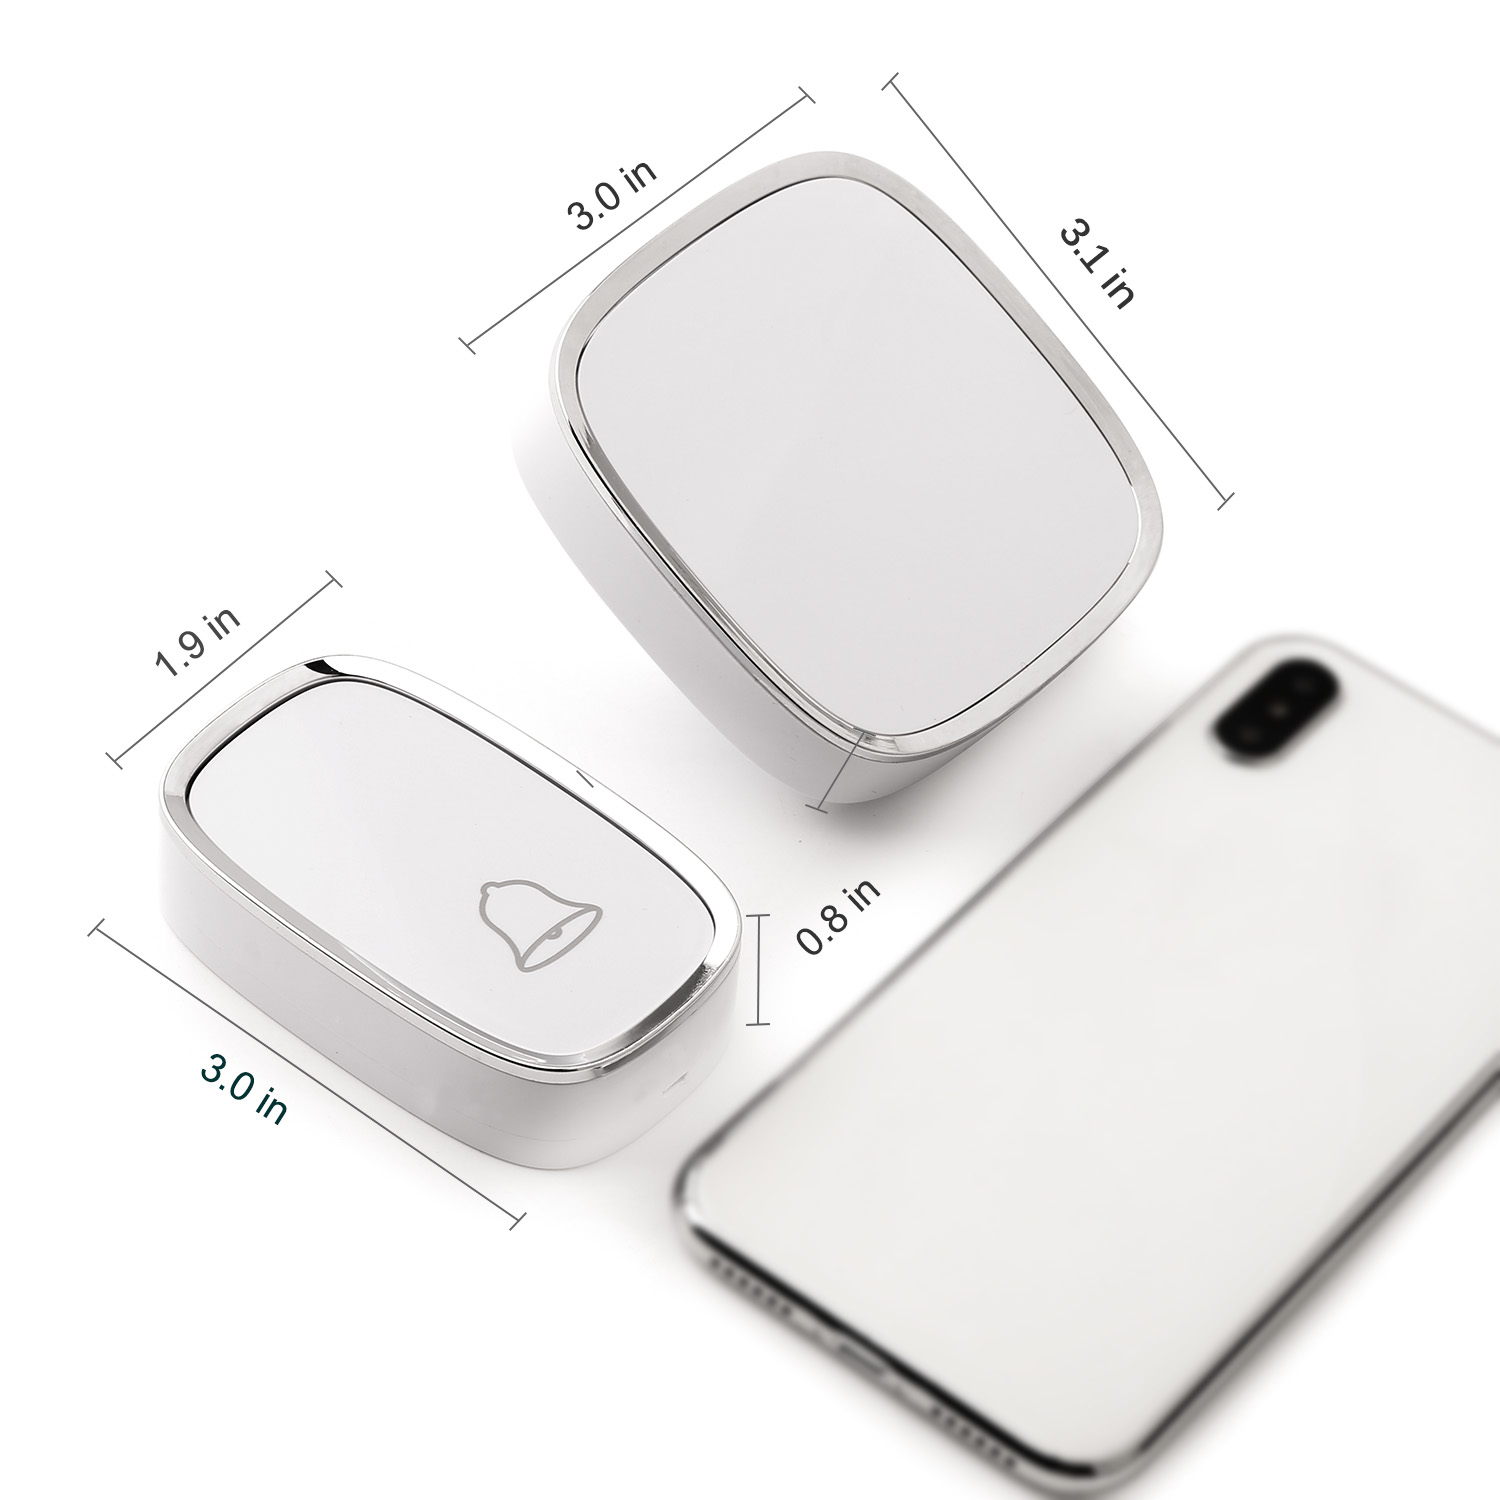 Melodies 36 Wireless Door Bell Chime White//Silver Plug In 200m Range